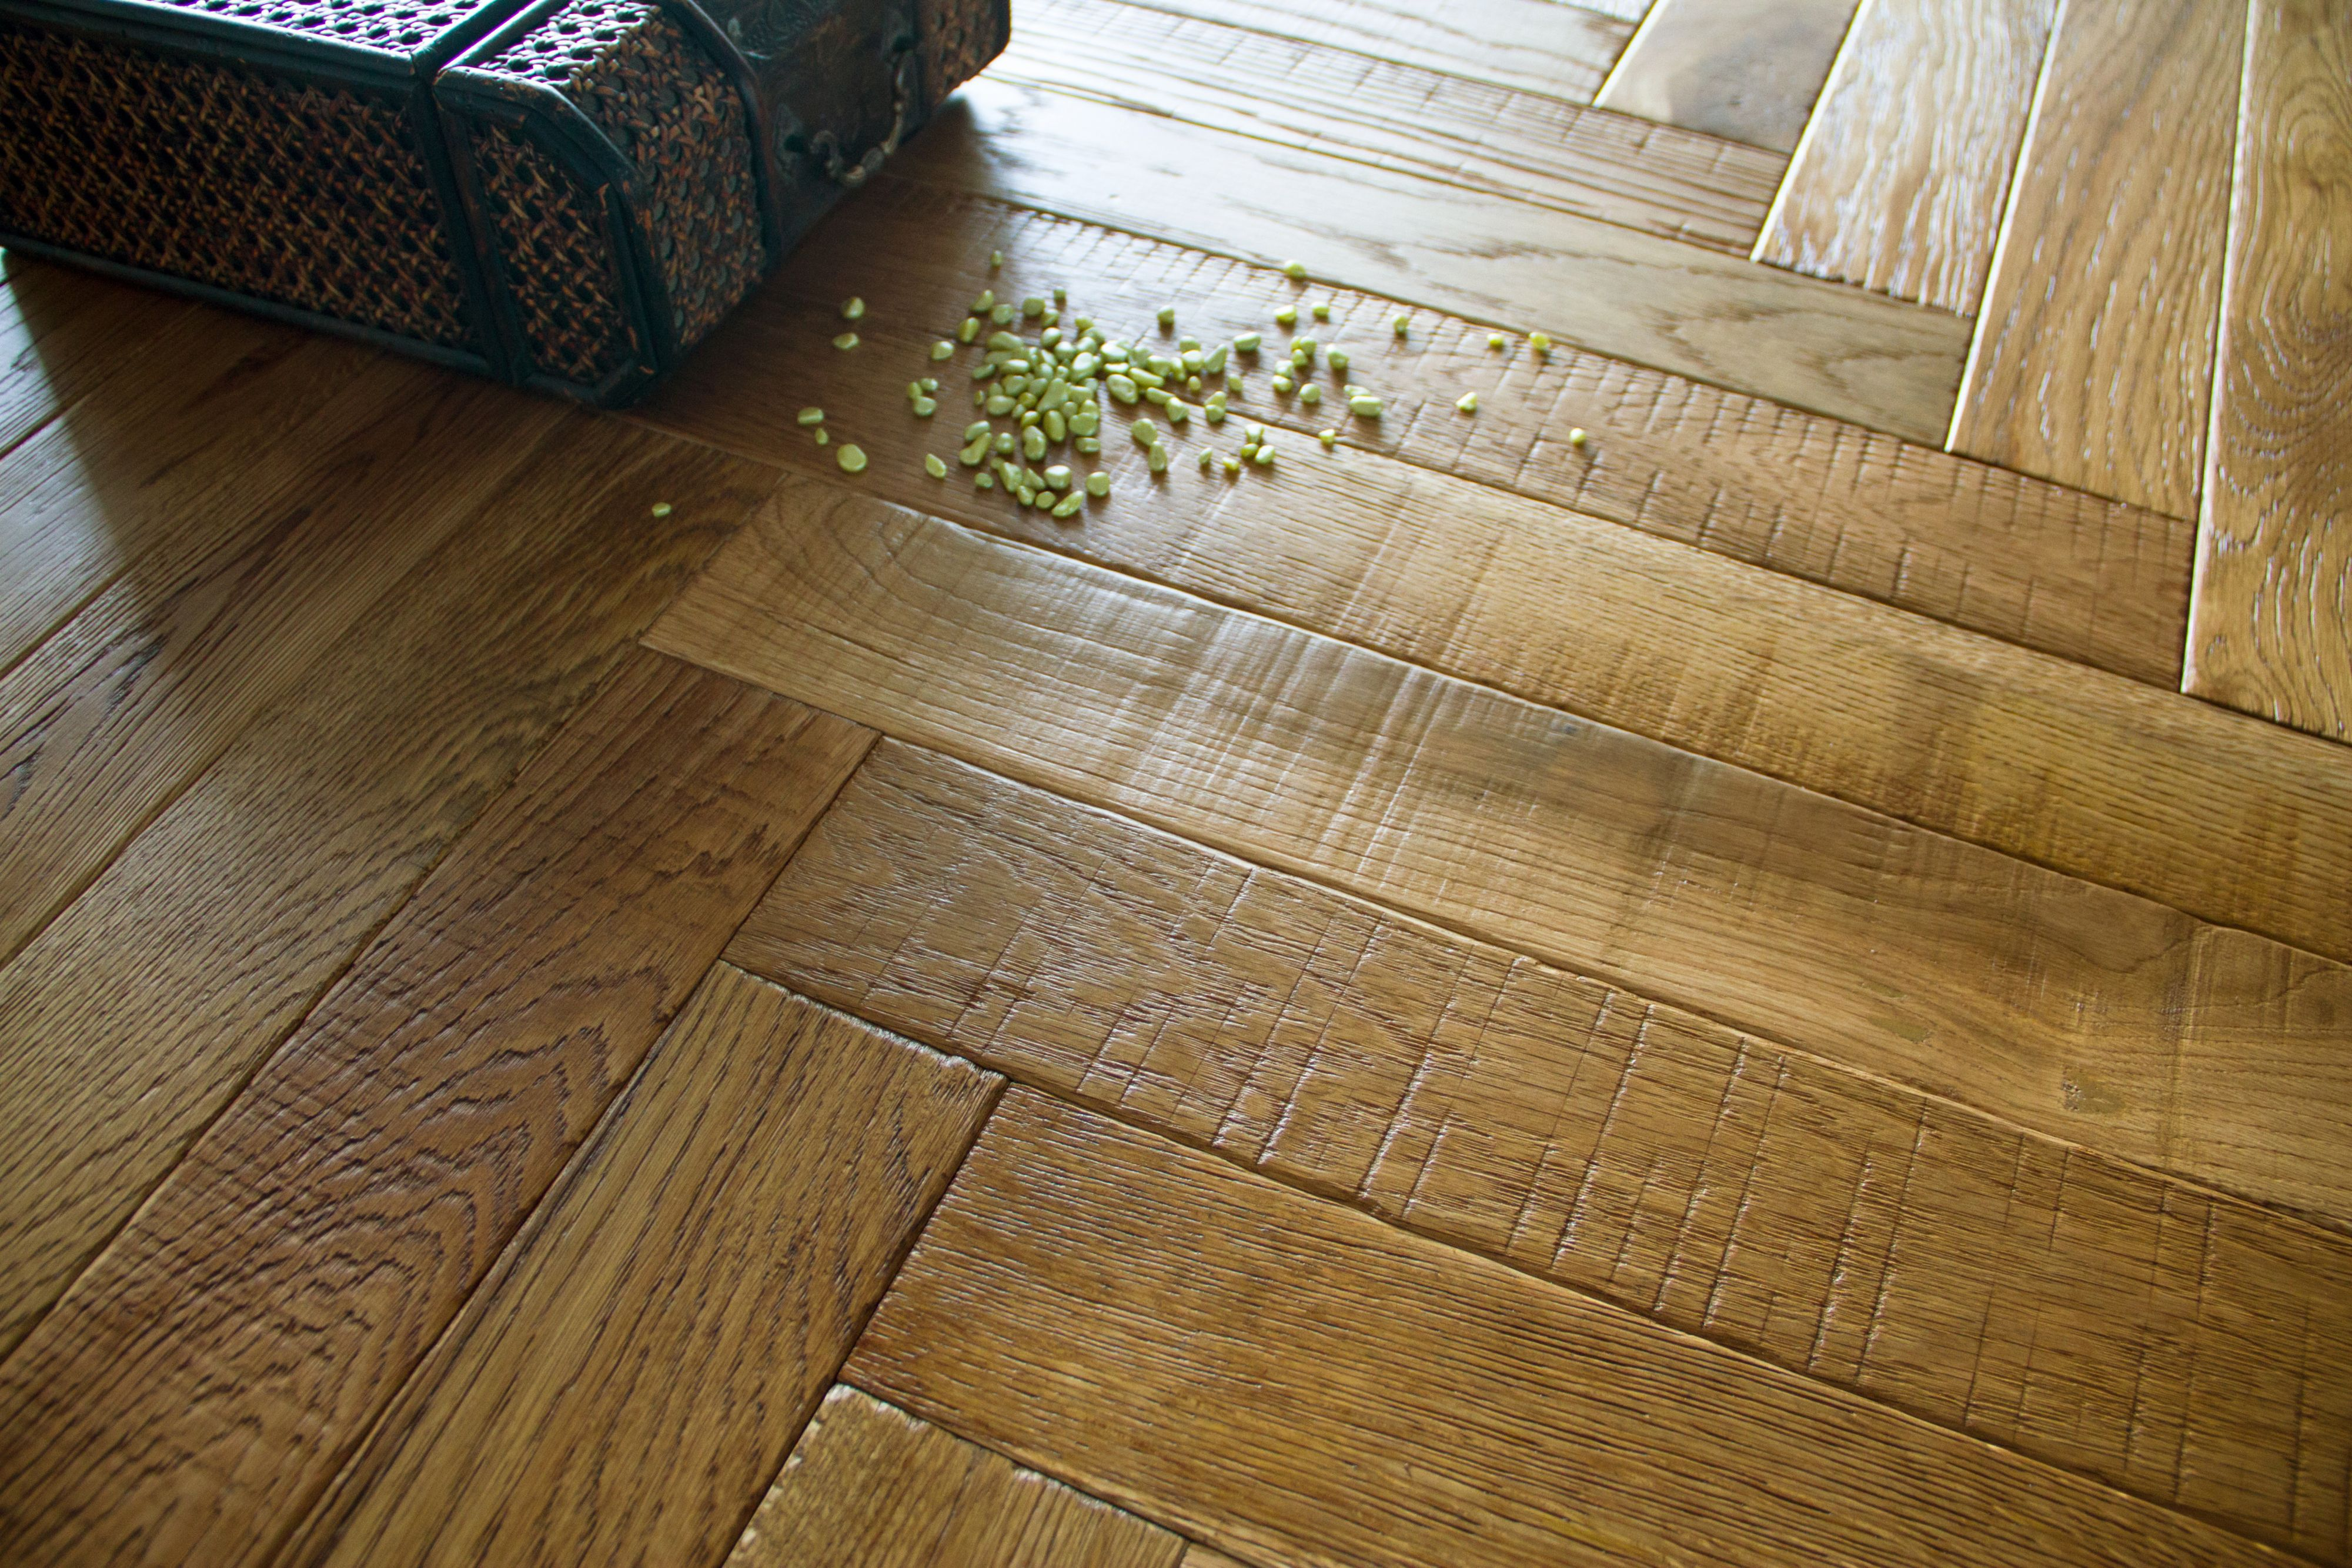 Colours Vindemia Herringbone Natural Flooring Oak Effect 0 86 M² Pack Departments Diy At B Q